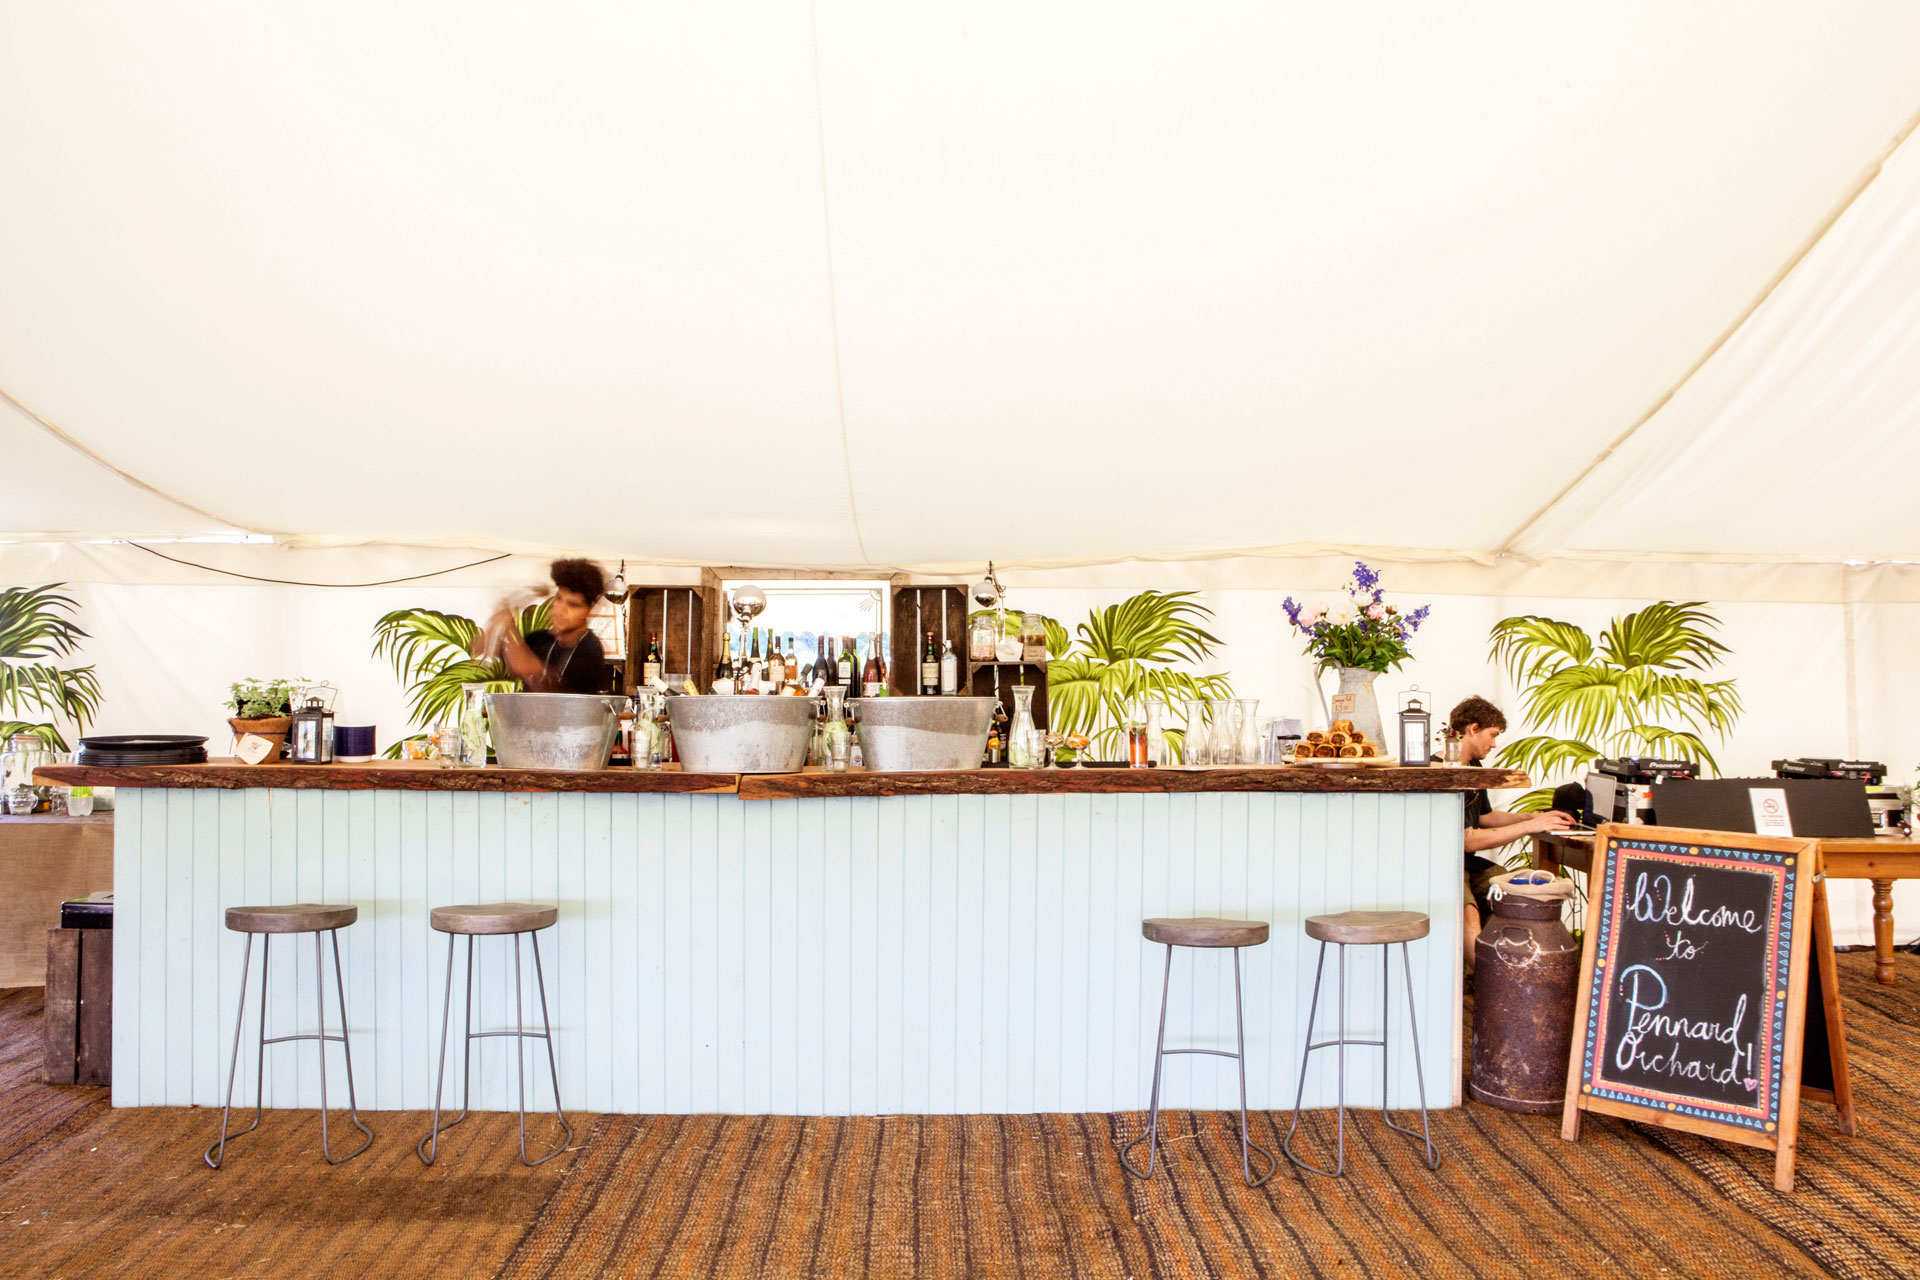 Pennard Orchard Bar